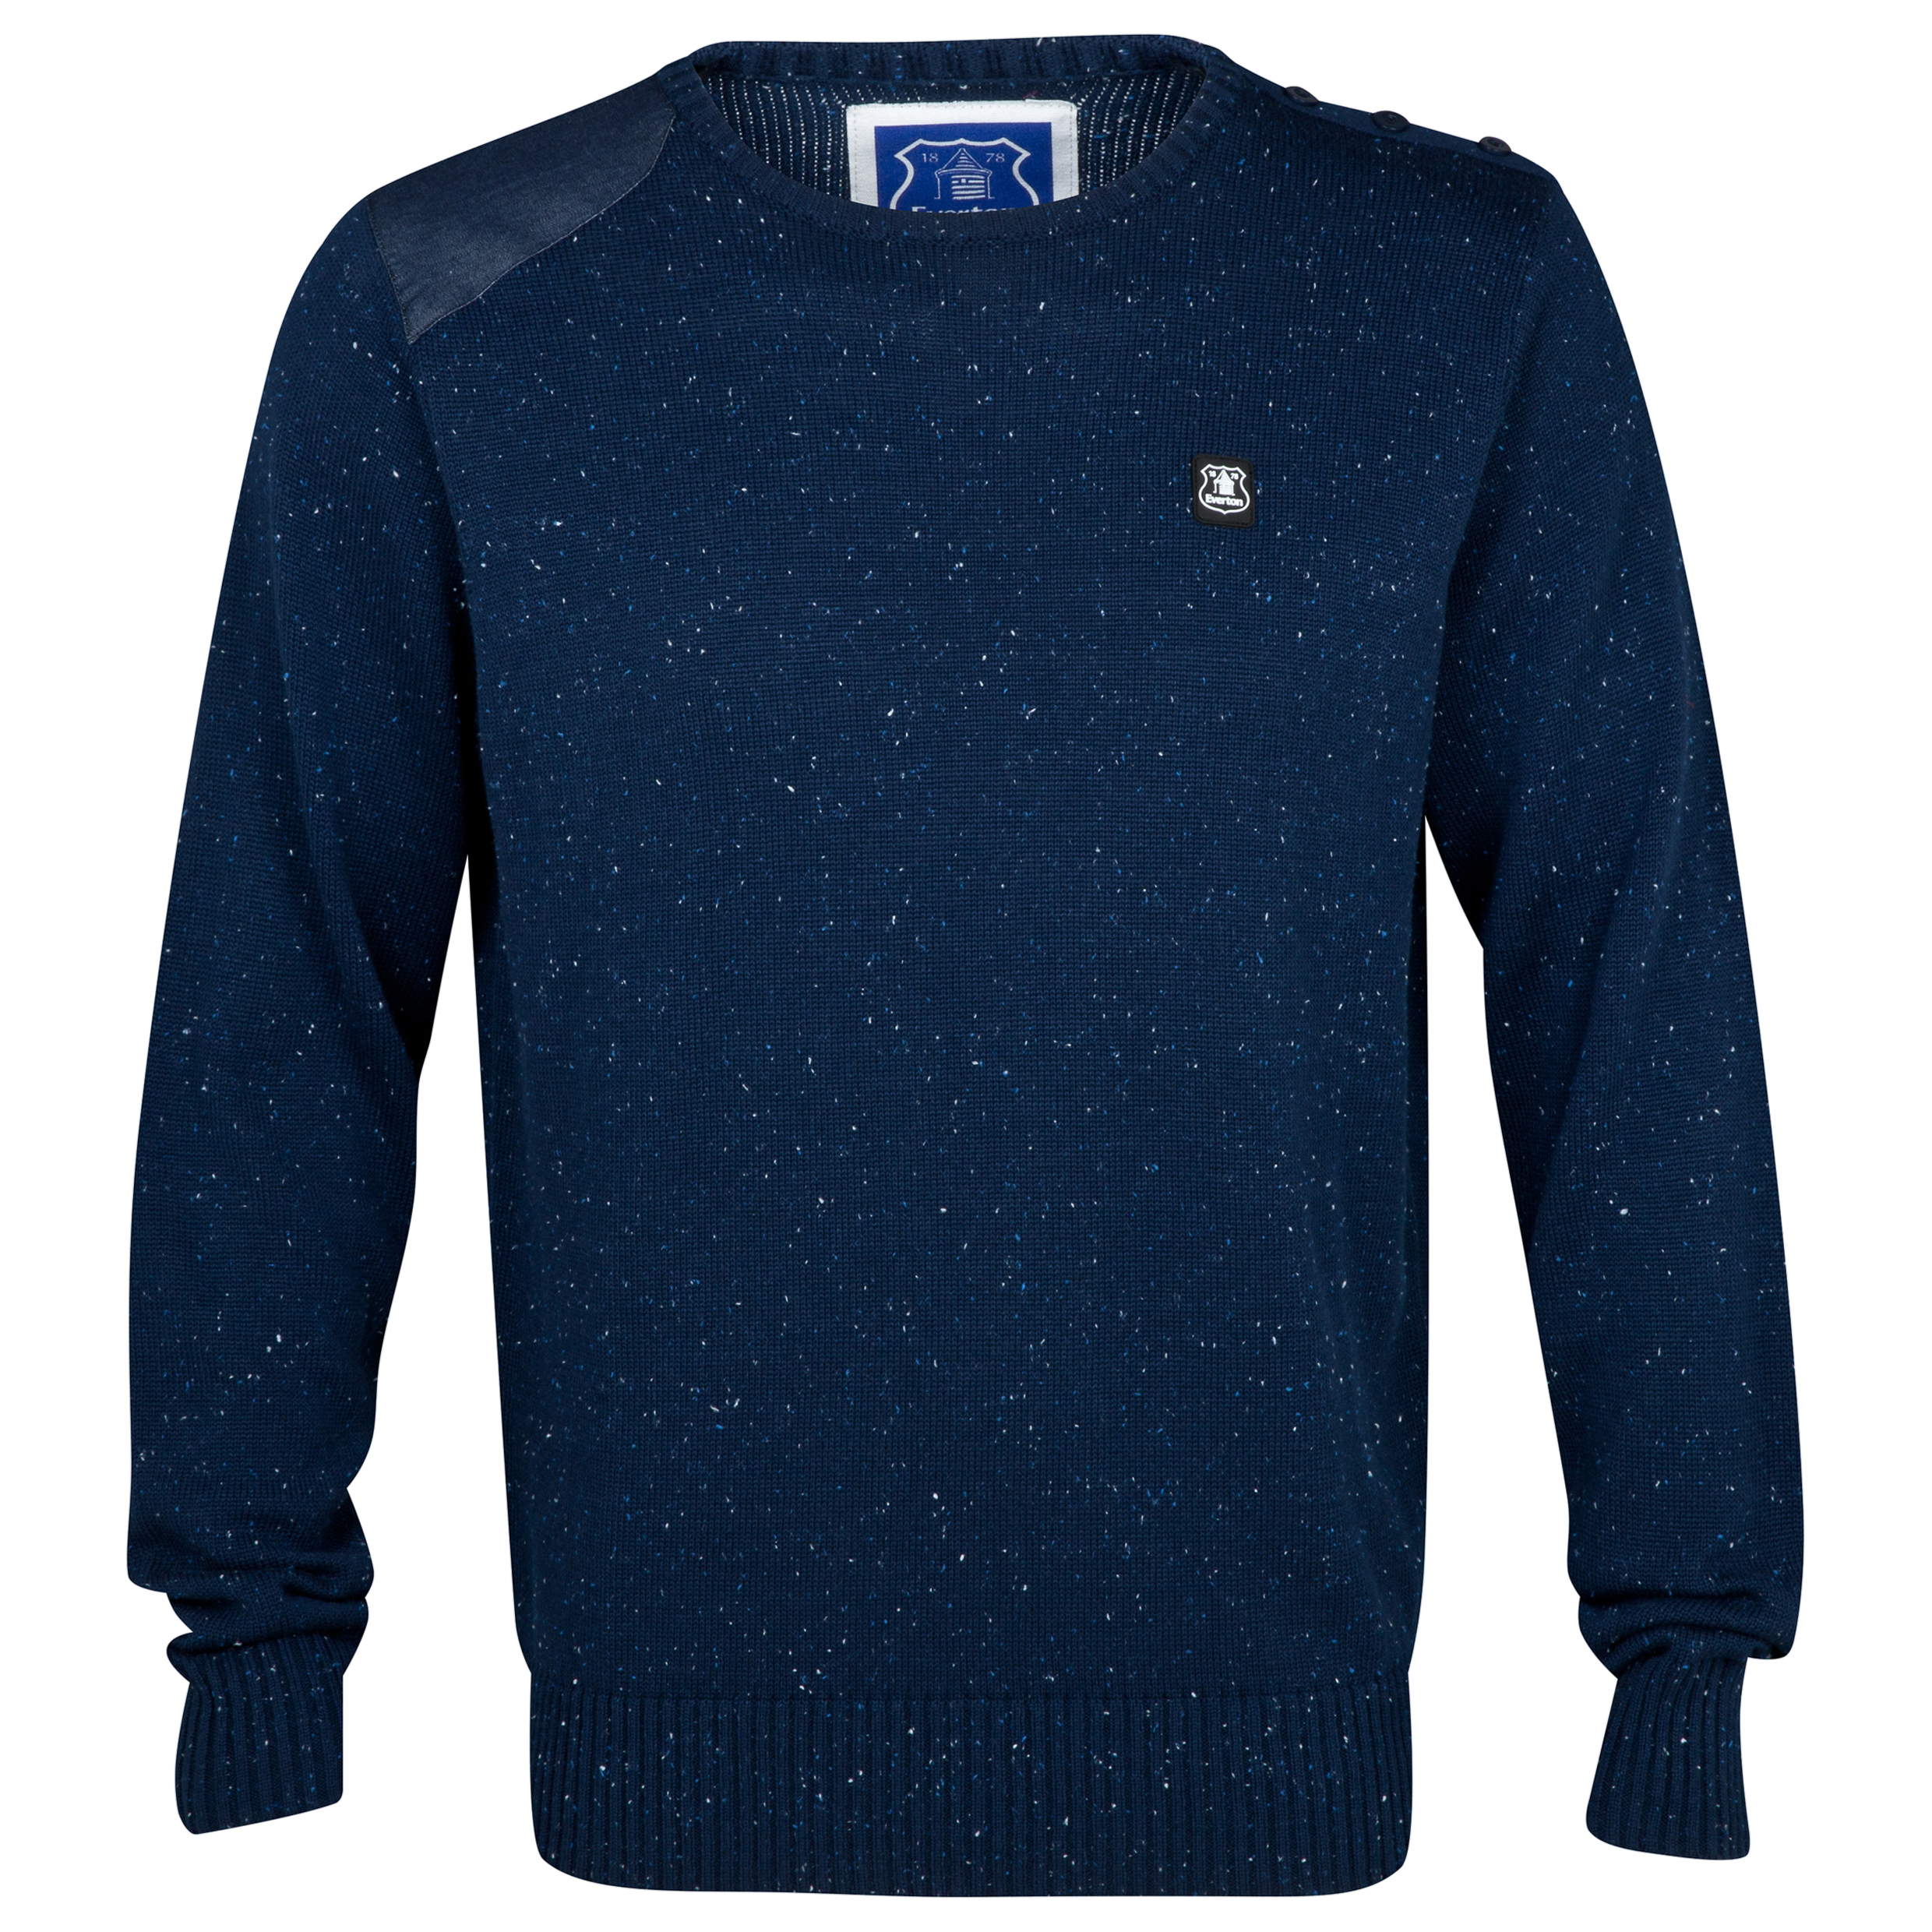 Everton Clovis Crew Neck Jumper - Mens Navy